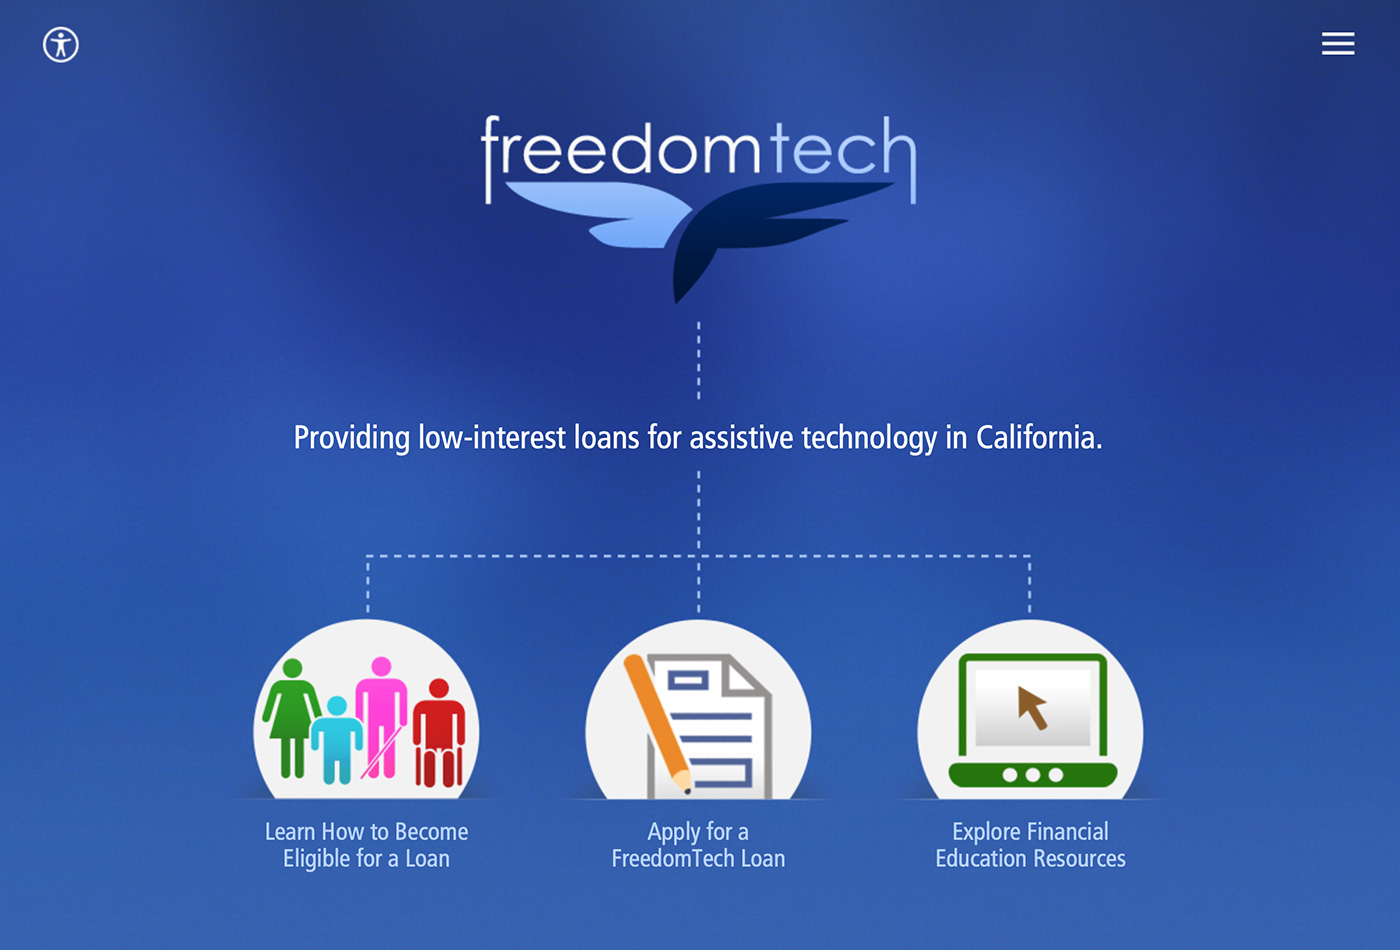 Screenshot of the FreedomTech website.